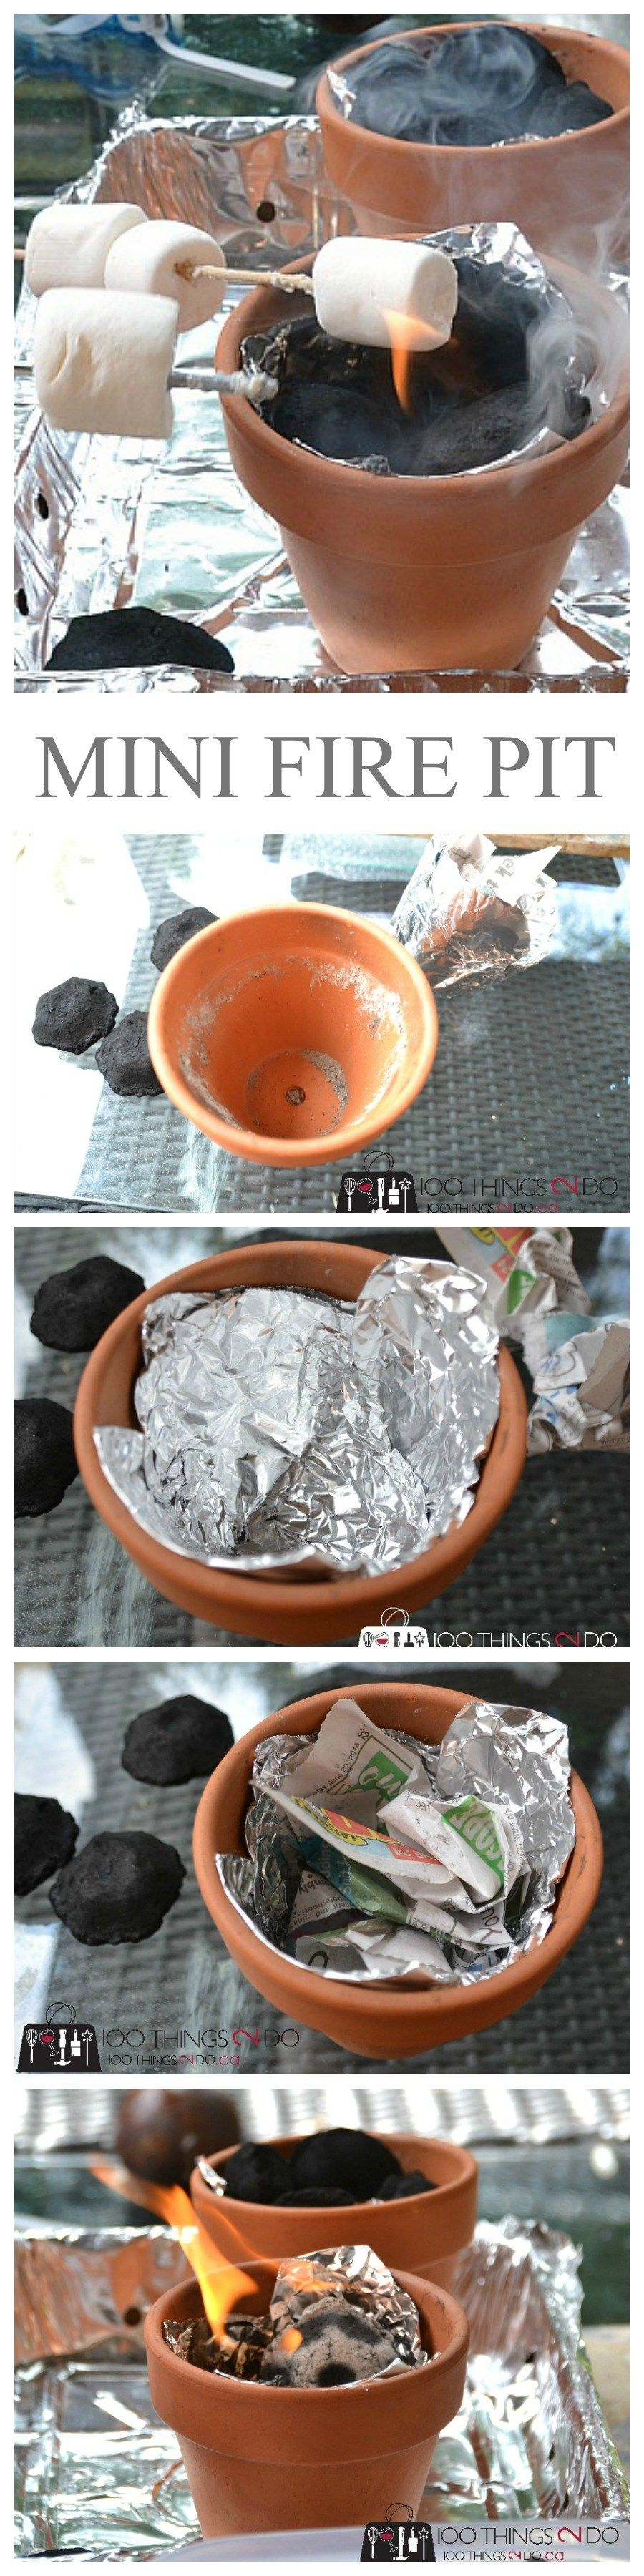 Personal (mini) Fire Pit 100 Things 2 Do Mini fire pit